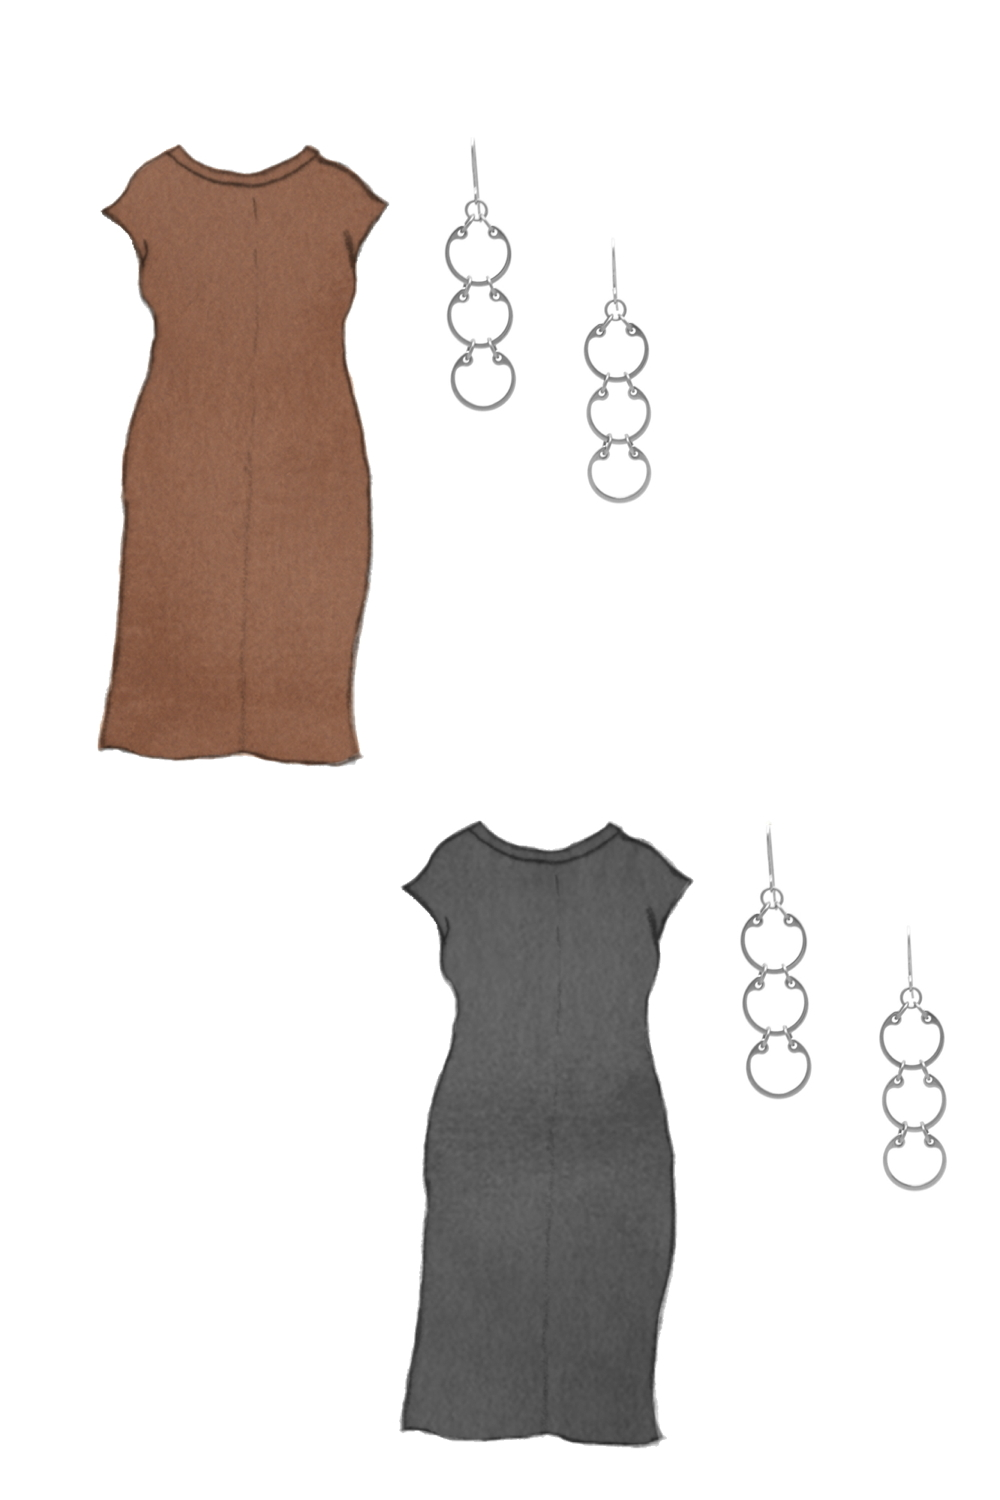 Style sketch of Everlane's Luxe Cotton Side-Slit Tee Dress in black and brown, with Wraptillion's Laburnum Earrings (modern geometric circles dangles).